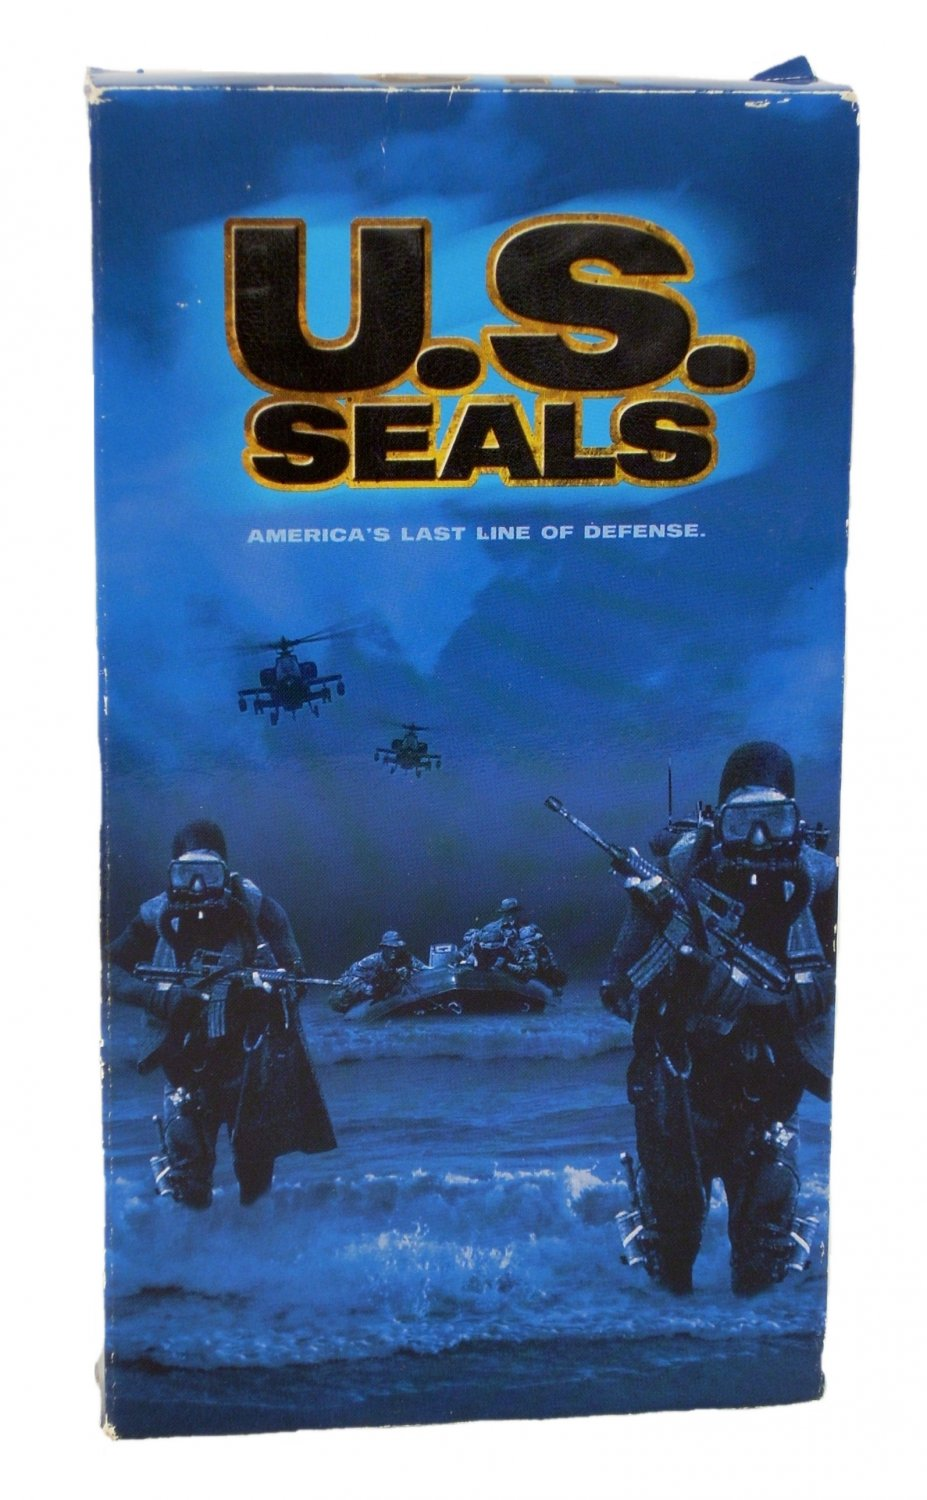 U.S. Seals America's Last Line of Defense VHS 1997